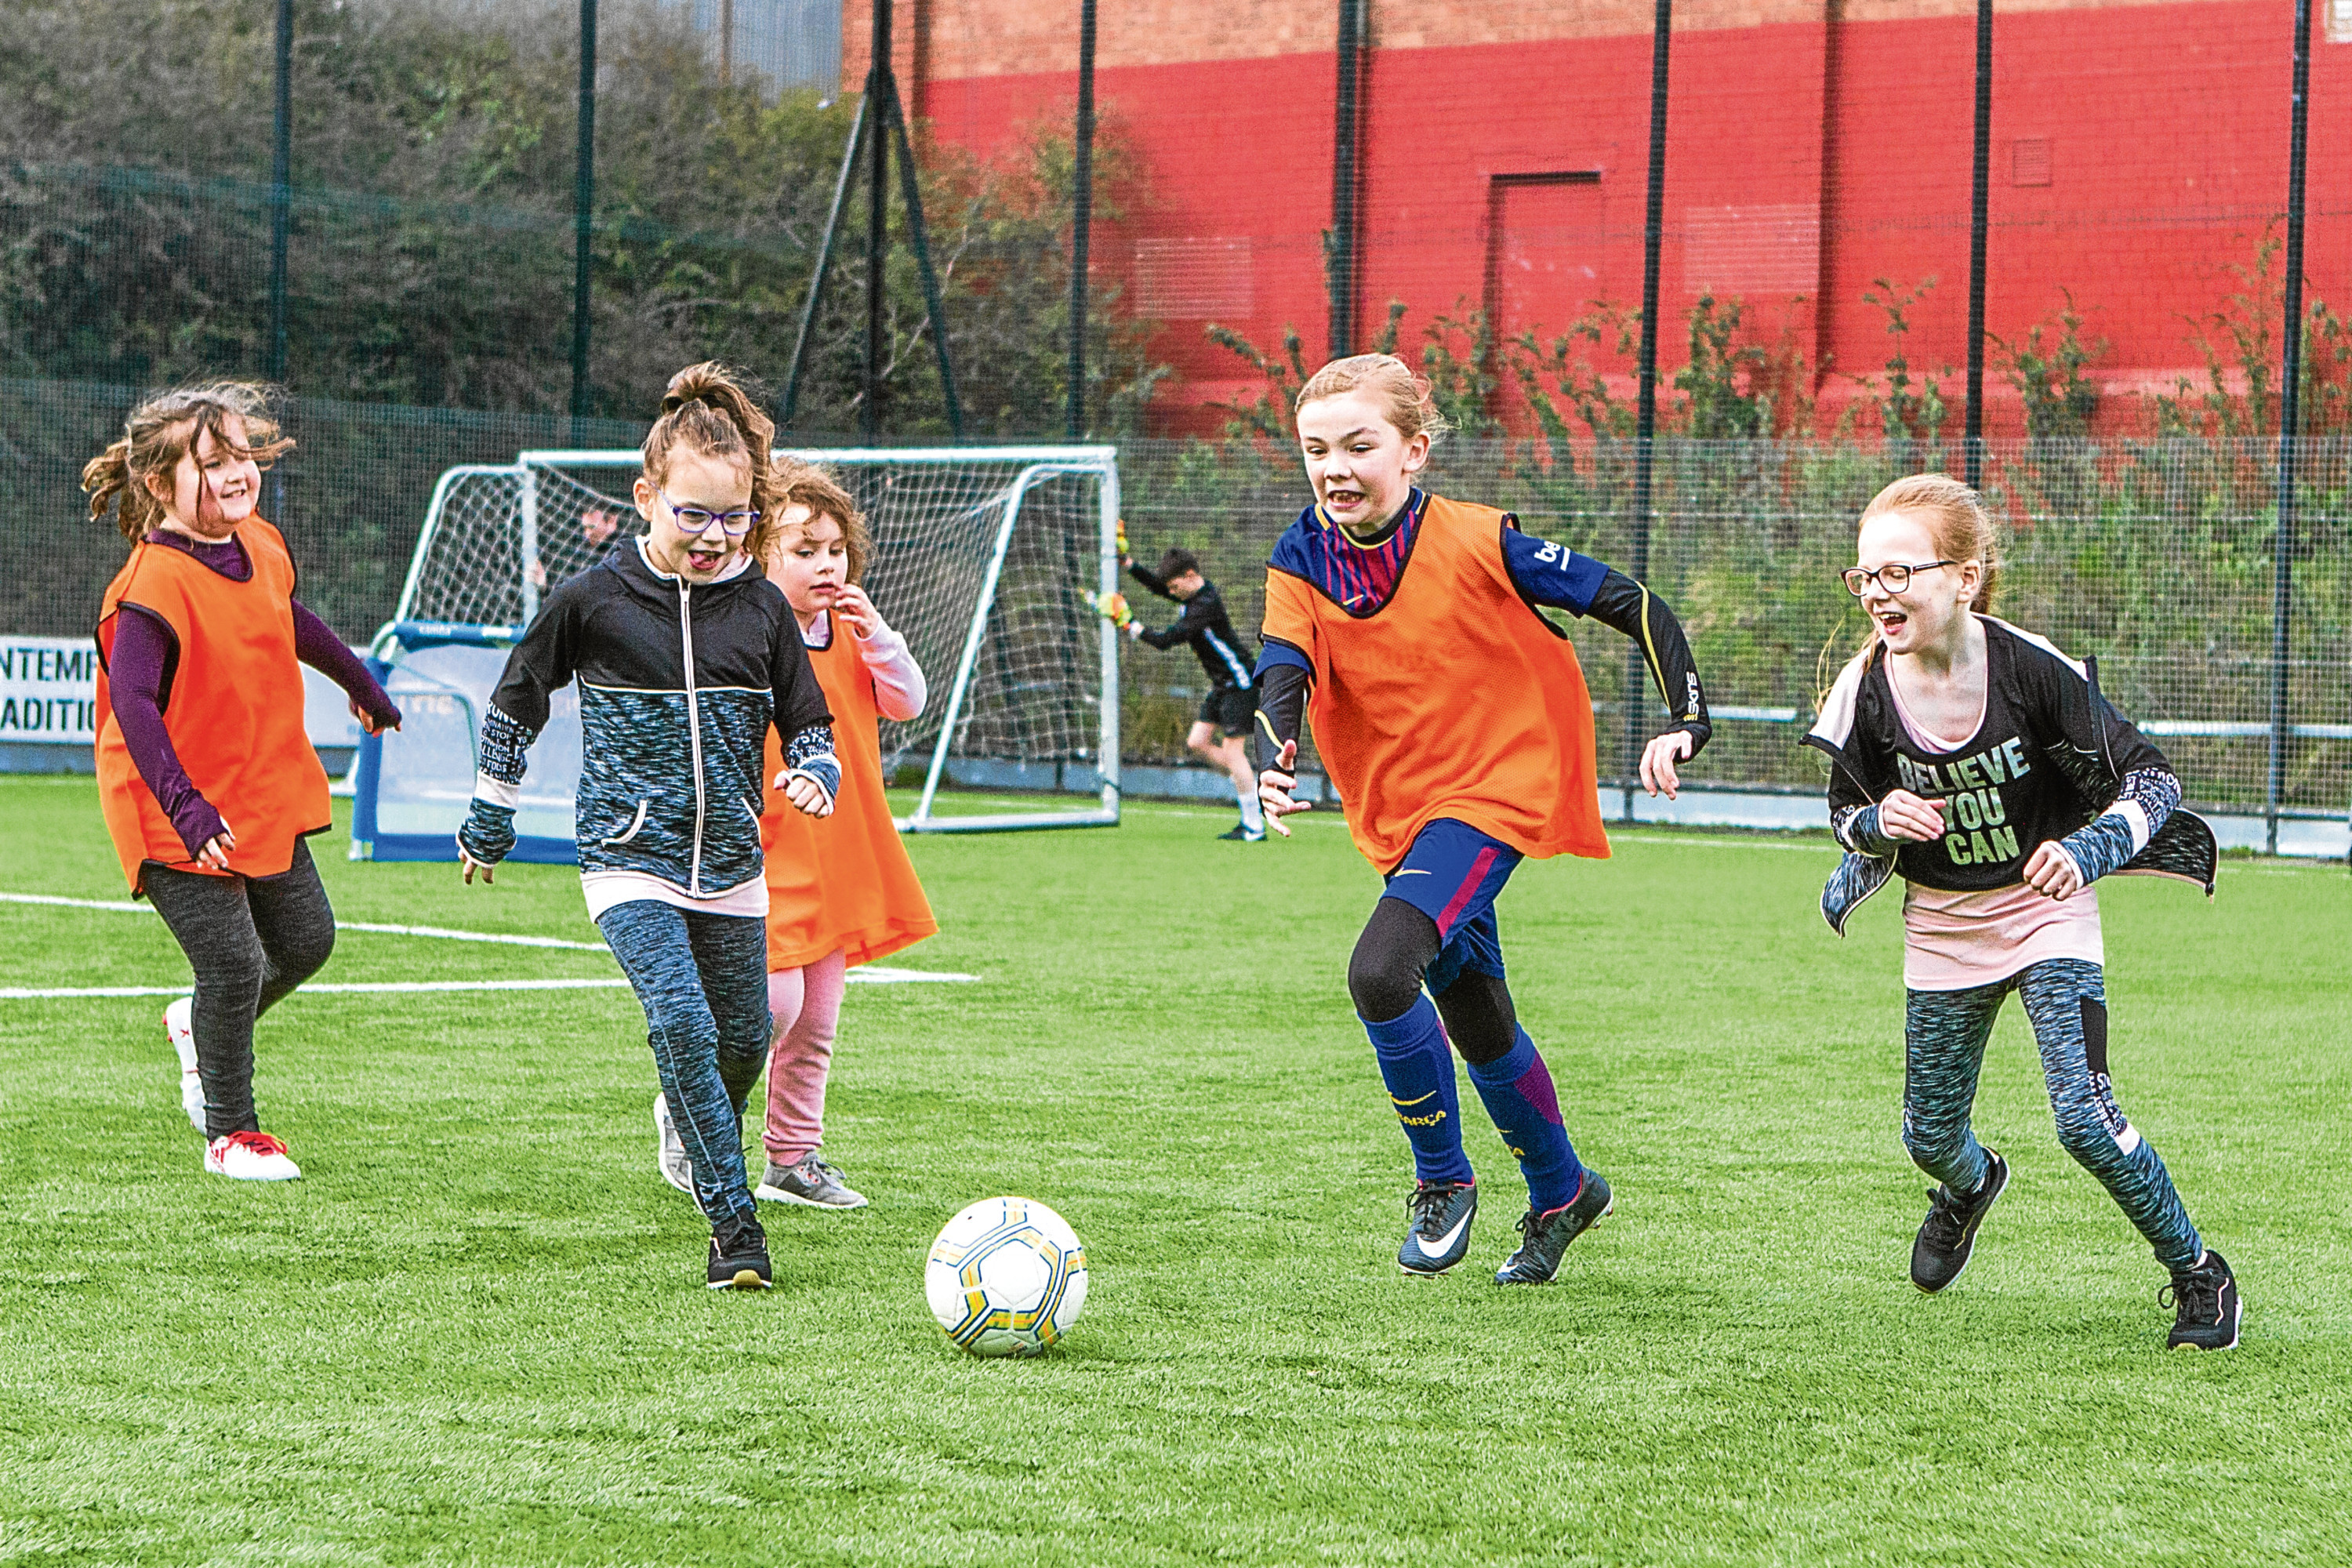 Tele News - Dundee - Sarah Williamson Story. CR0000594 Launch of new Lisa Evans Soccer Centre Club for girls Primary 1 to 7, organised by Dundee United Community Trust. Picture shows, left to right, Caoimhe Strachan (aged 9), Sabina Higgins (aged 10), Hannah Simpson (aged 5), Amy Smith (aged 11) with the ball and Anna Higgins (aged 9). GA Arena, Gussie Park, Tannadice Park, Tannadice Street, Dundee. Monday 16th April 2018.